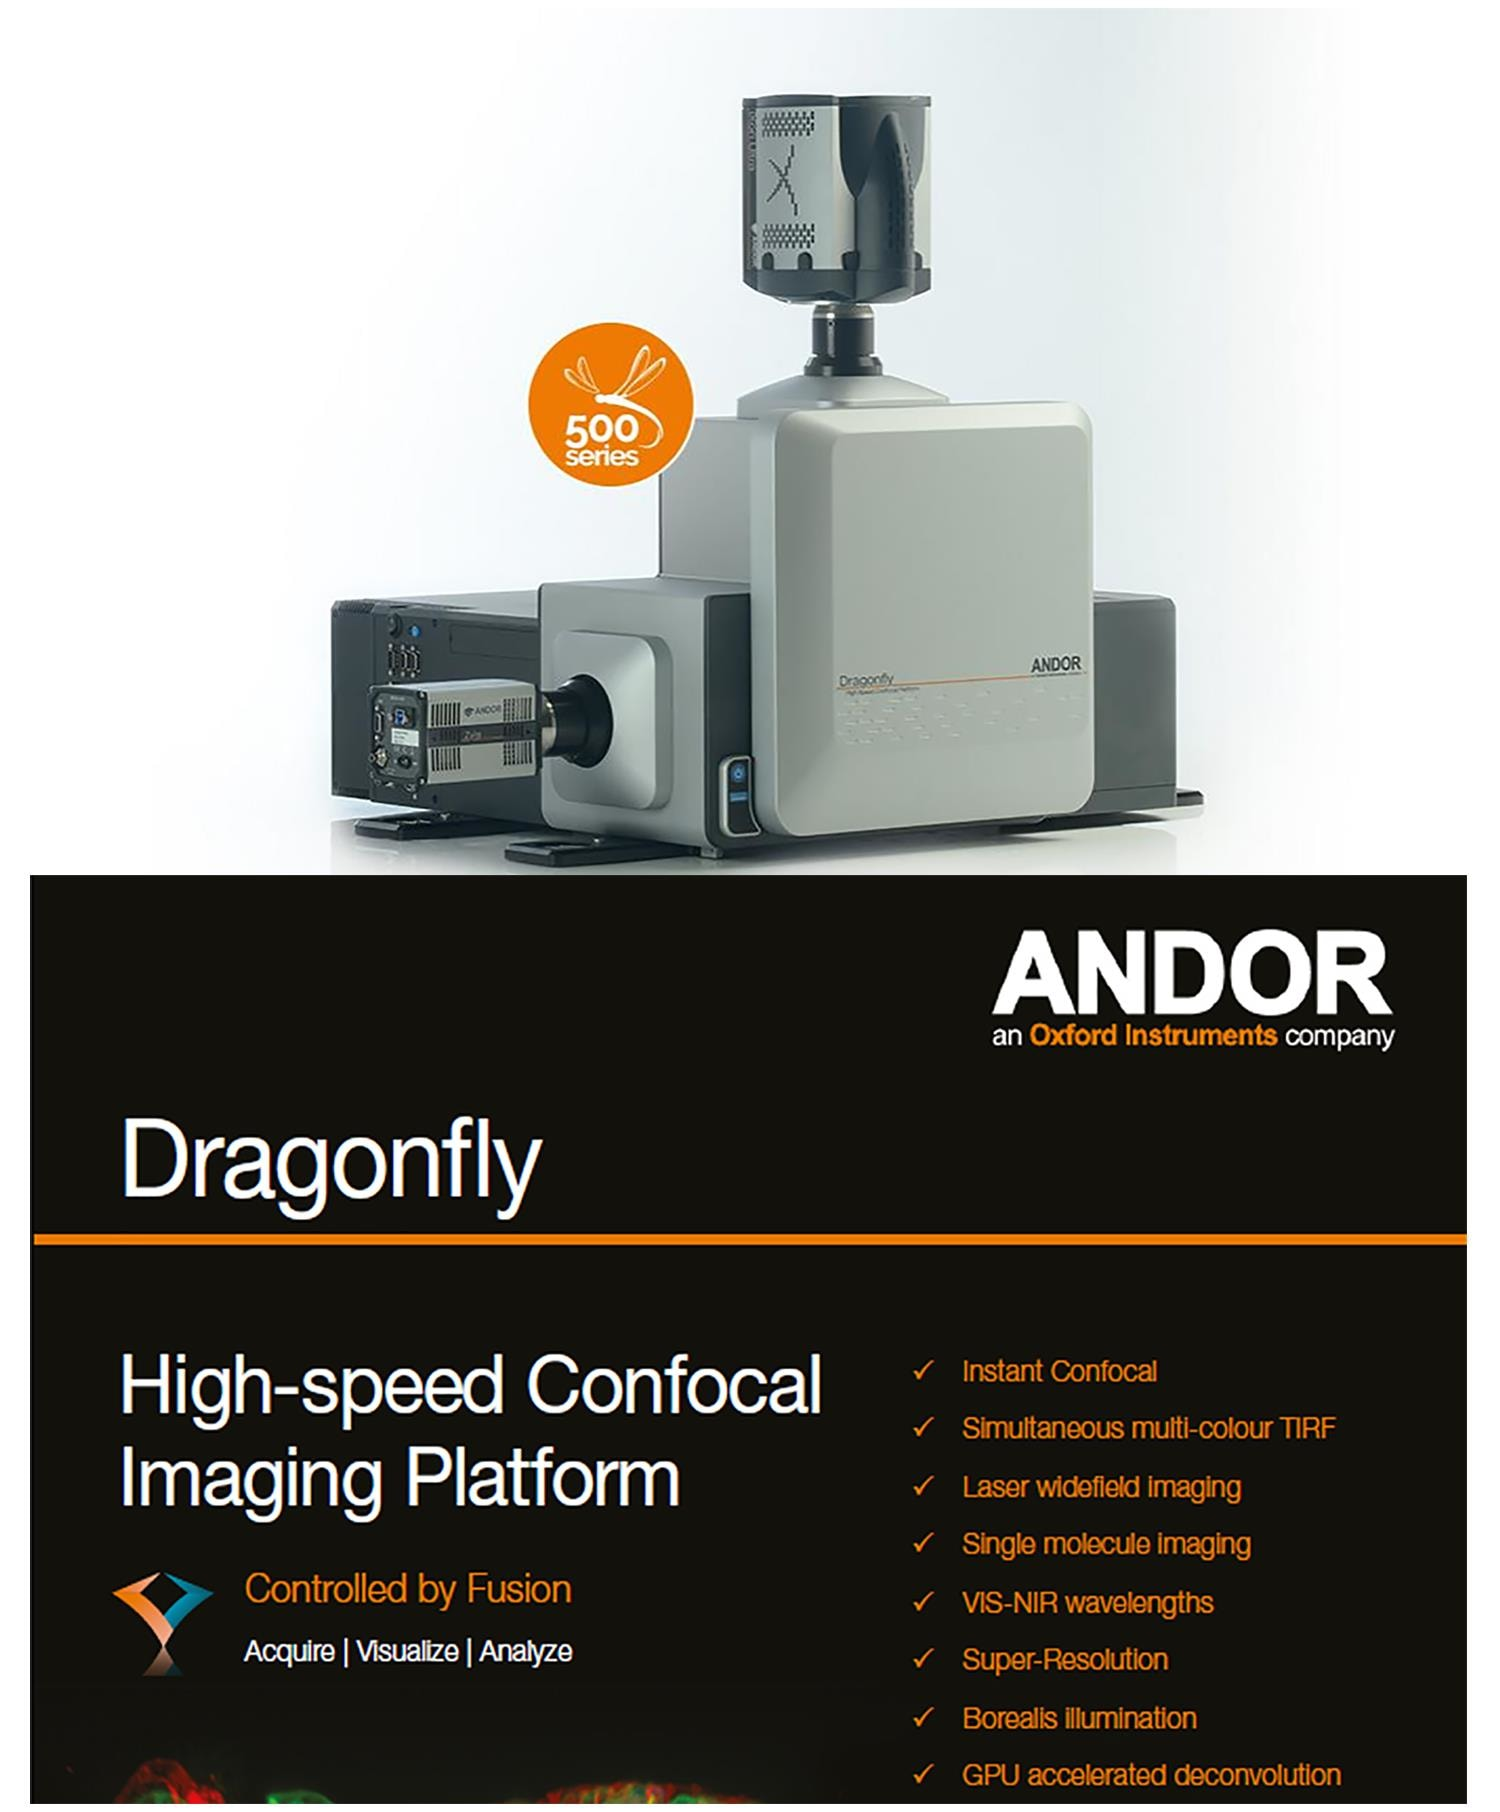 Andor Dragonfly confocal system